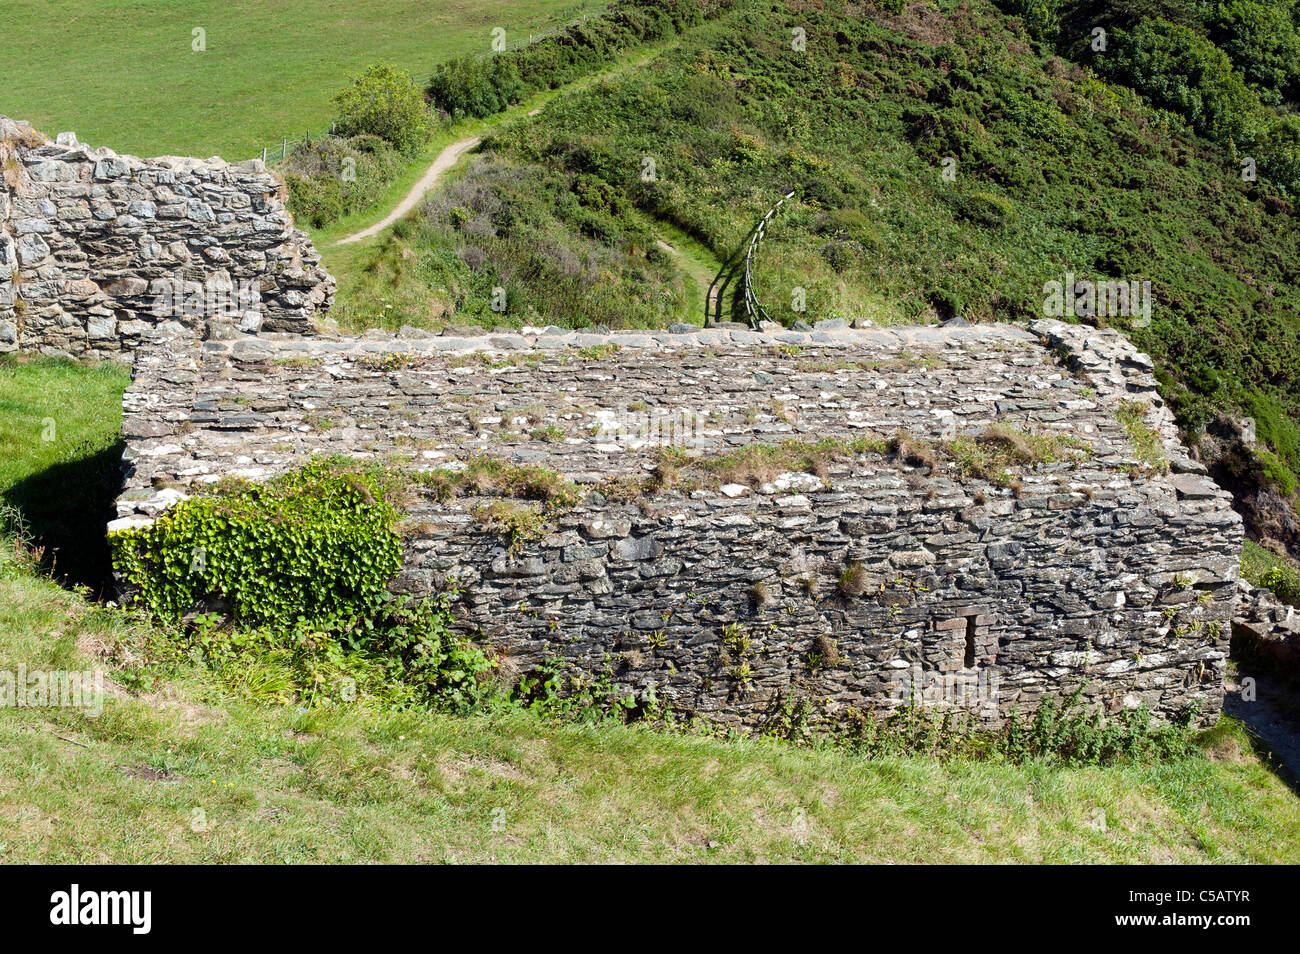 Disused stone building forming part of Fishguard Fort, defending the Lower Town Harbour, built in 1780. - Stock Image